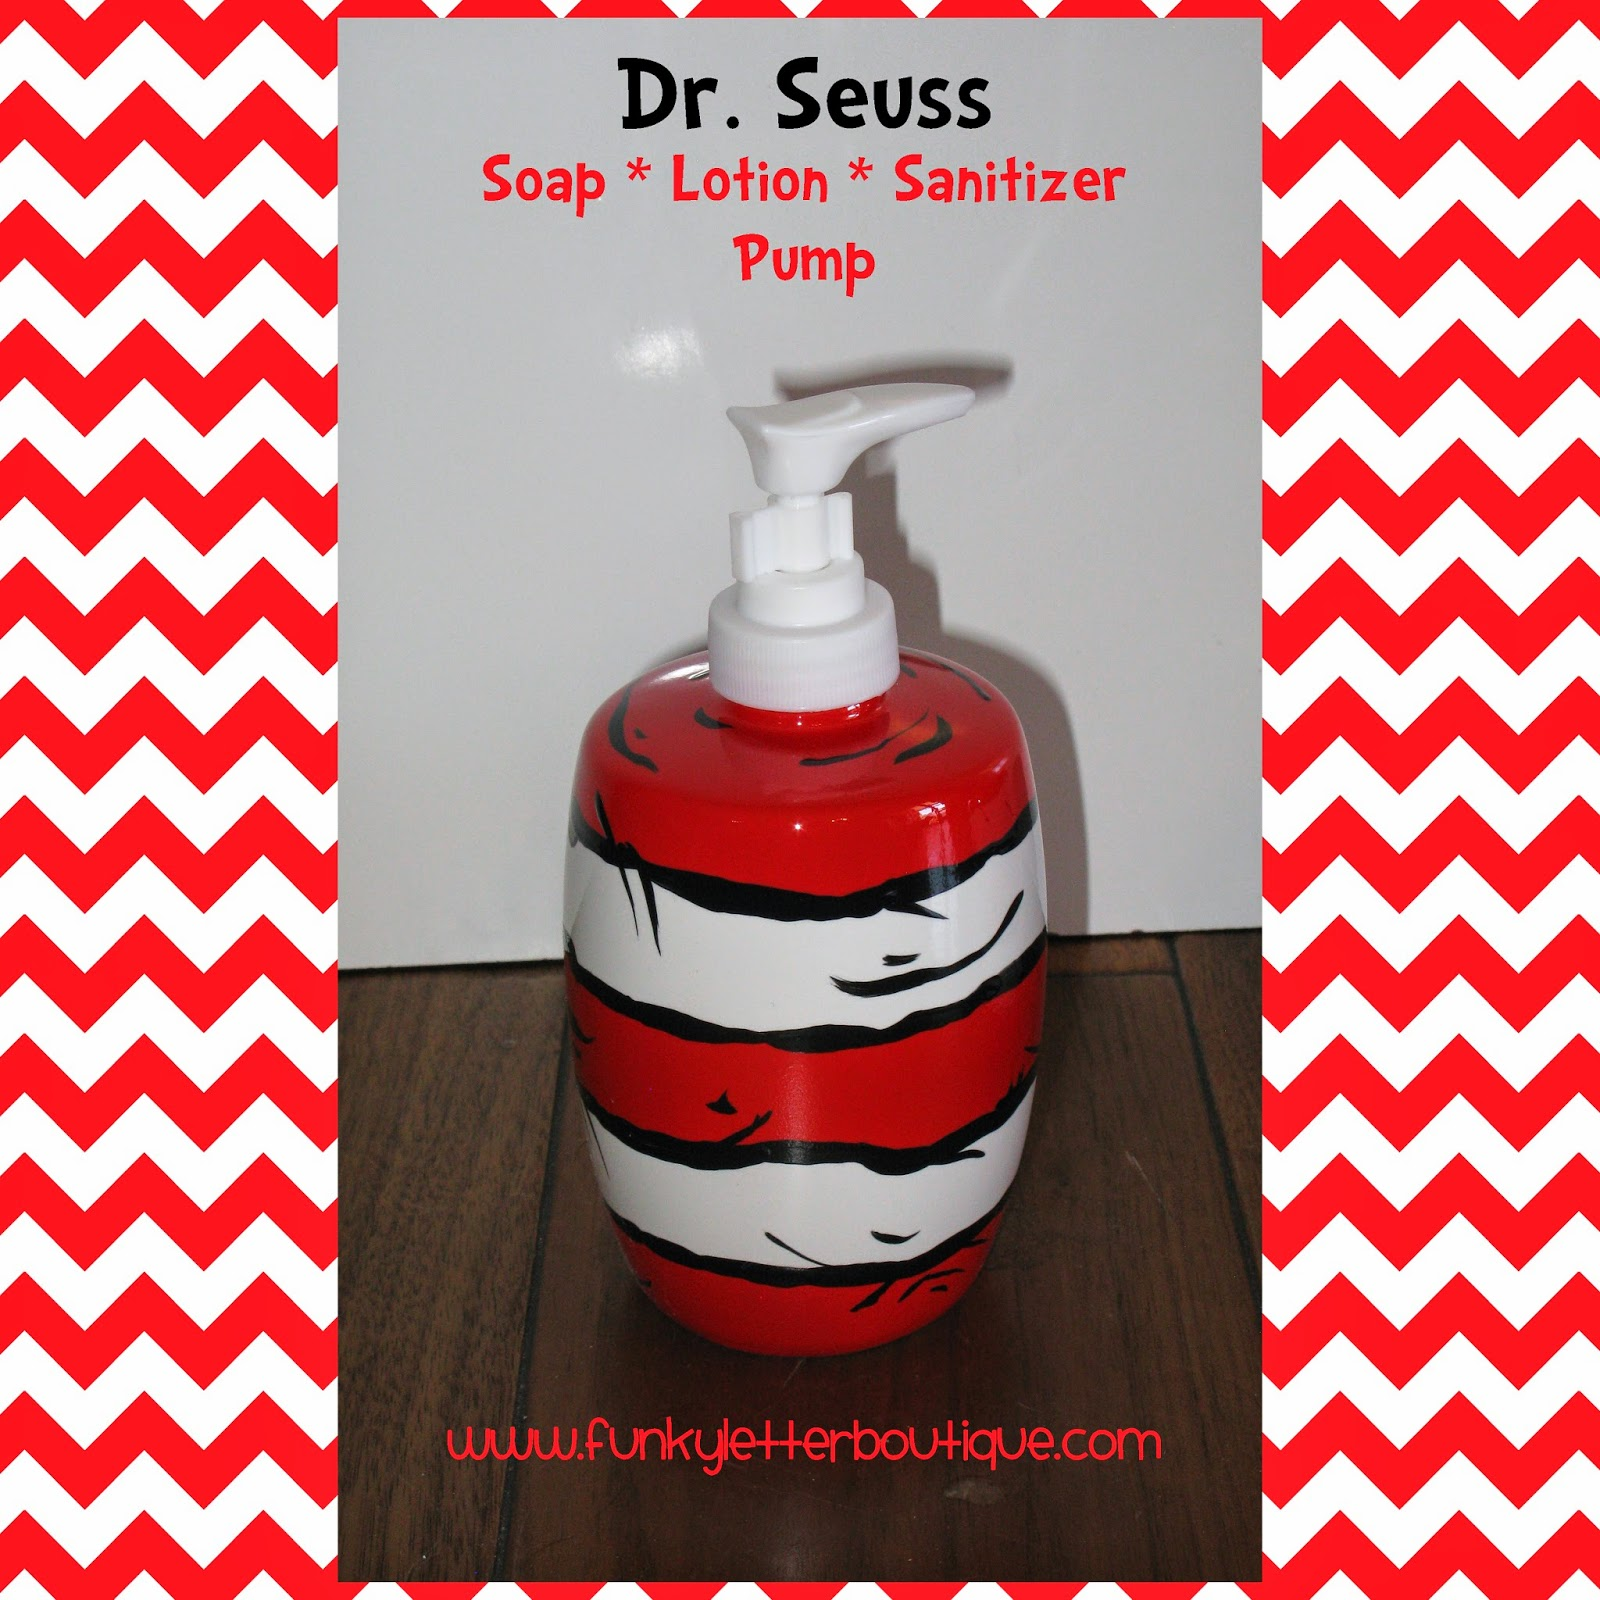 Pottery barn dr seuss shower curtain - Dr Seuss Cat In The Hat Striped Soap Or Lotion Pump